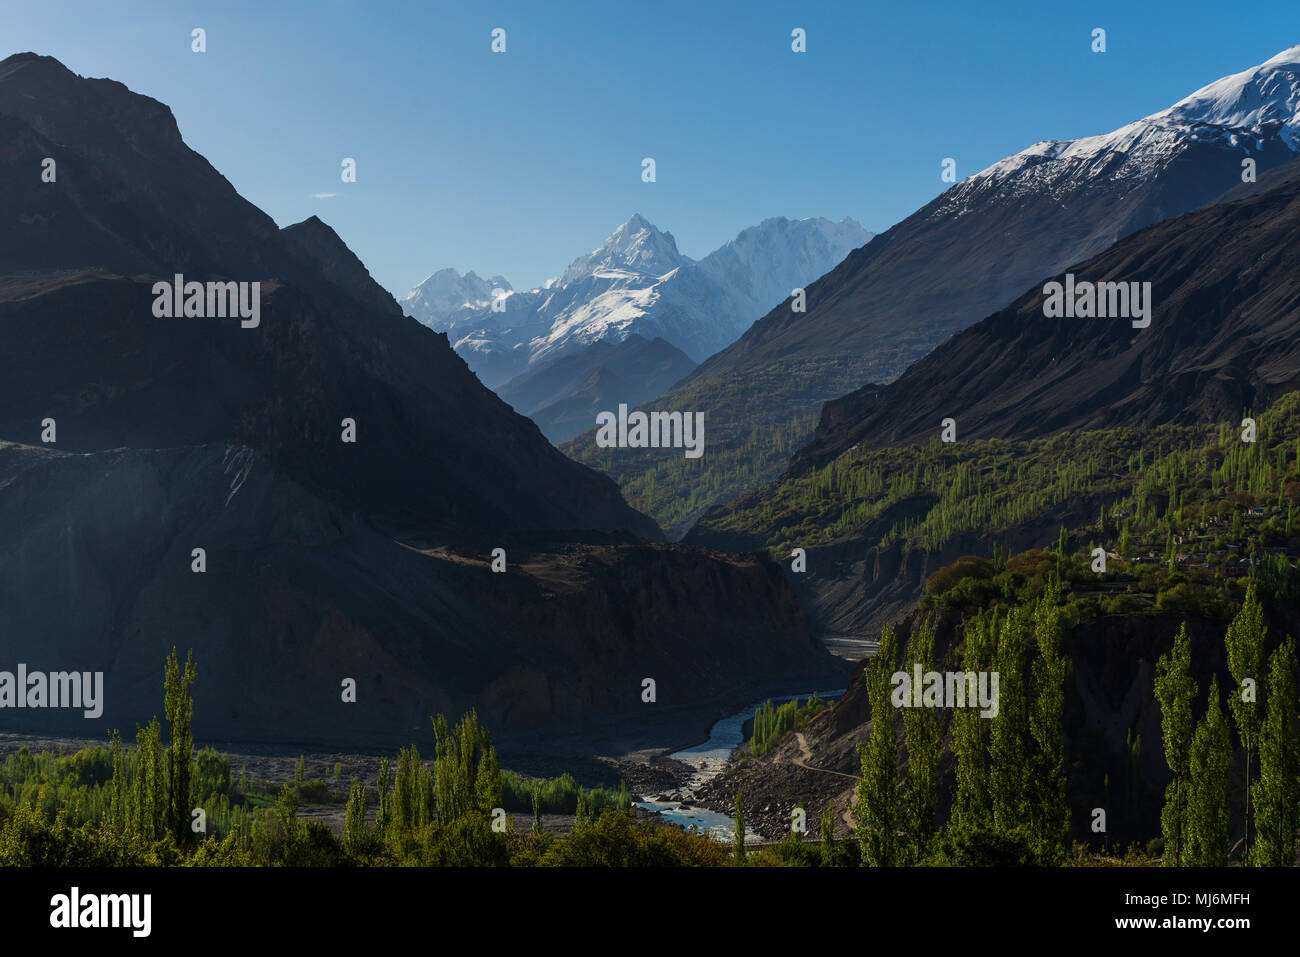 Valley mountains landscape, forest and mountain range in summer at Hunza valley Pakistan - Stock Image